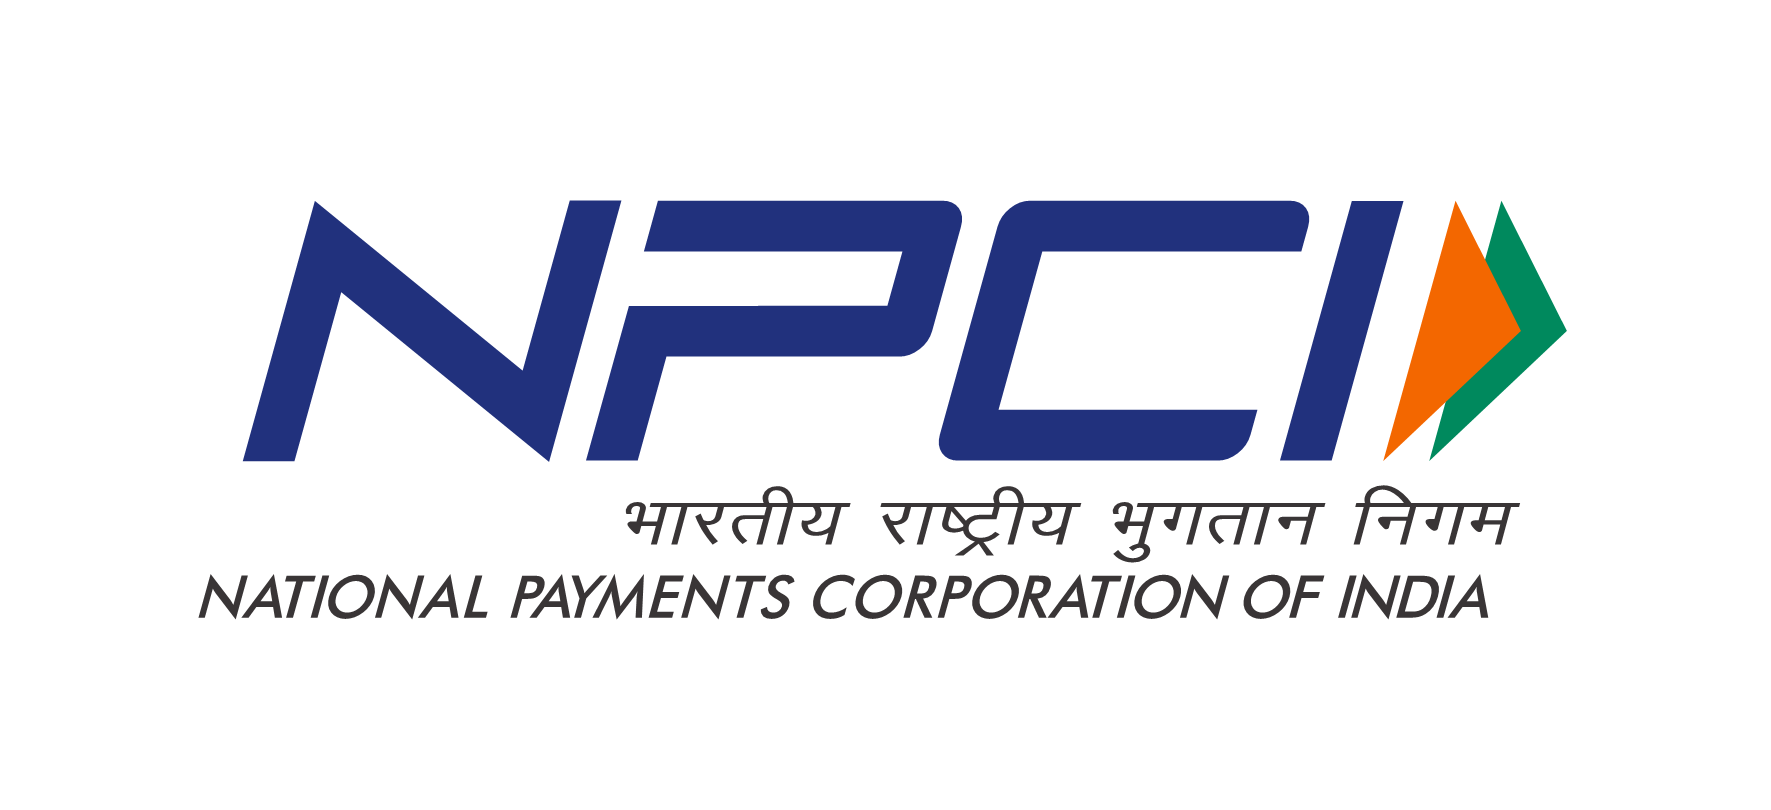 NPCI (National Payments Corporation of India)